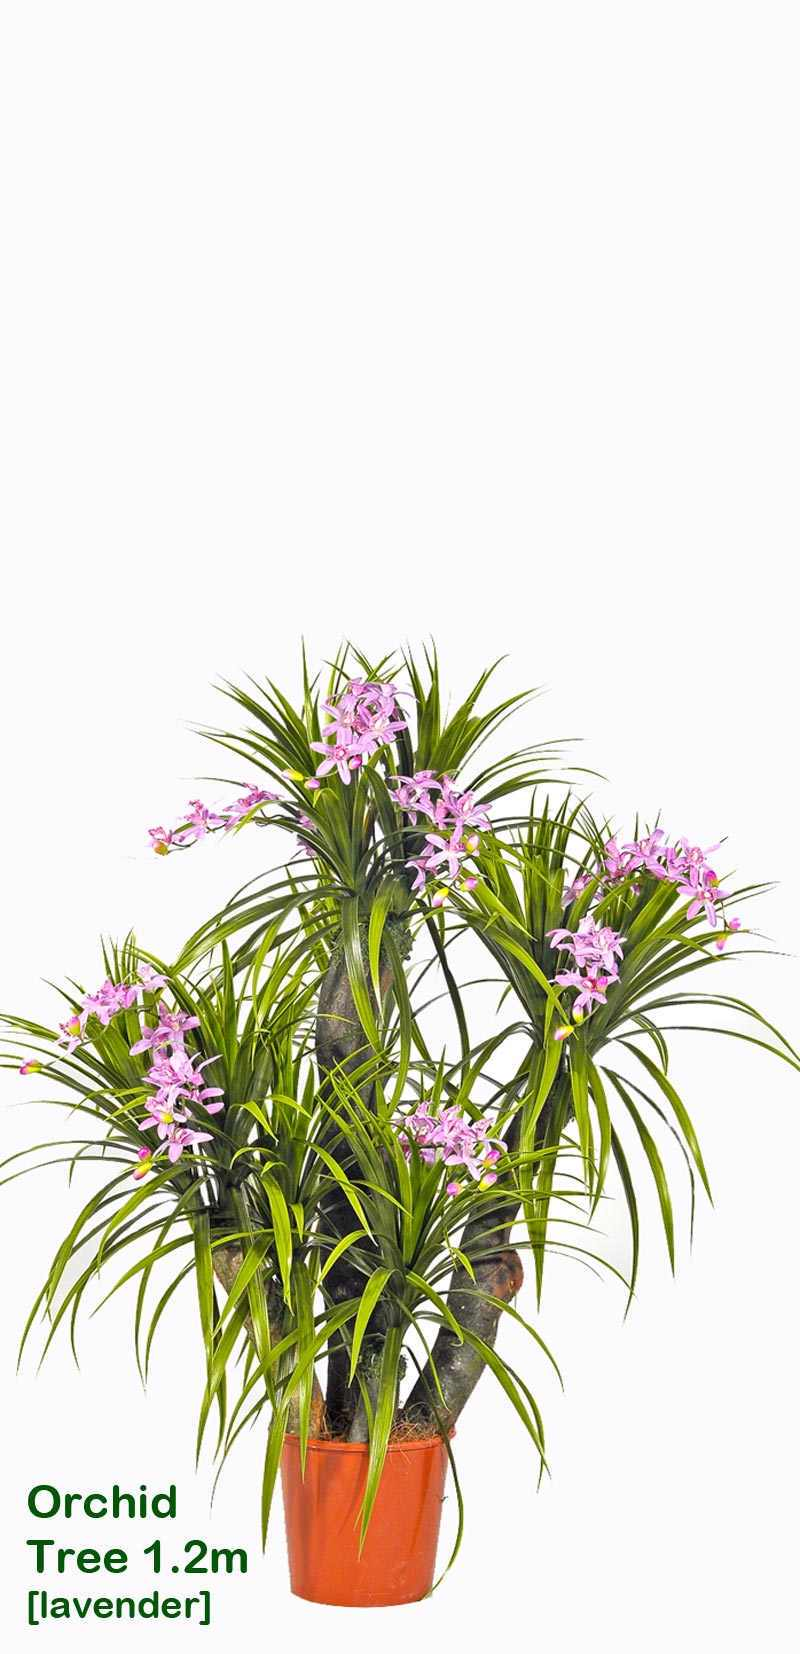 Articial Plants - Orchid Trees 1m